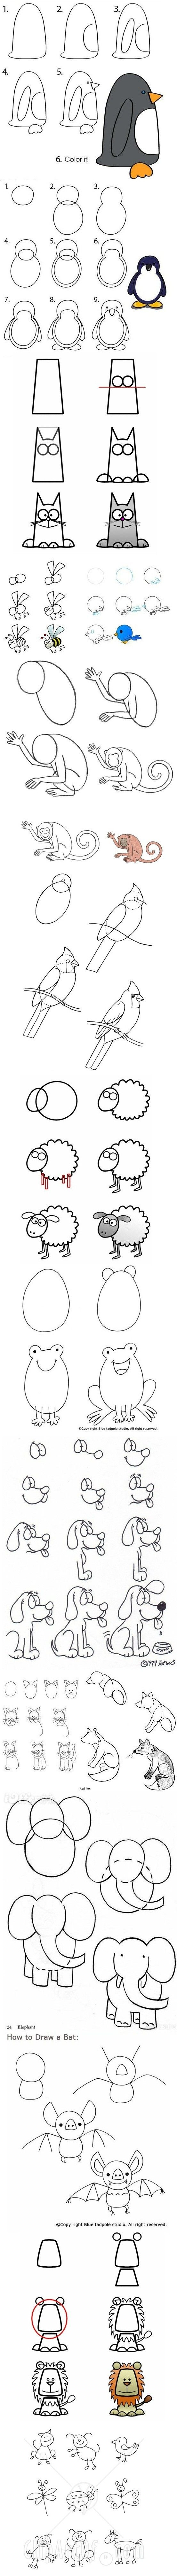 How to draw...: Animal Drawings, Easy Drawings Of Animal, Easy Step By Step Drawings, For Kids, Drawings Animal, Things To Drawings Easy, Easy Drawings Of Love, How To Drawings, Drawings Tutorials